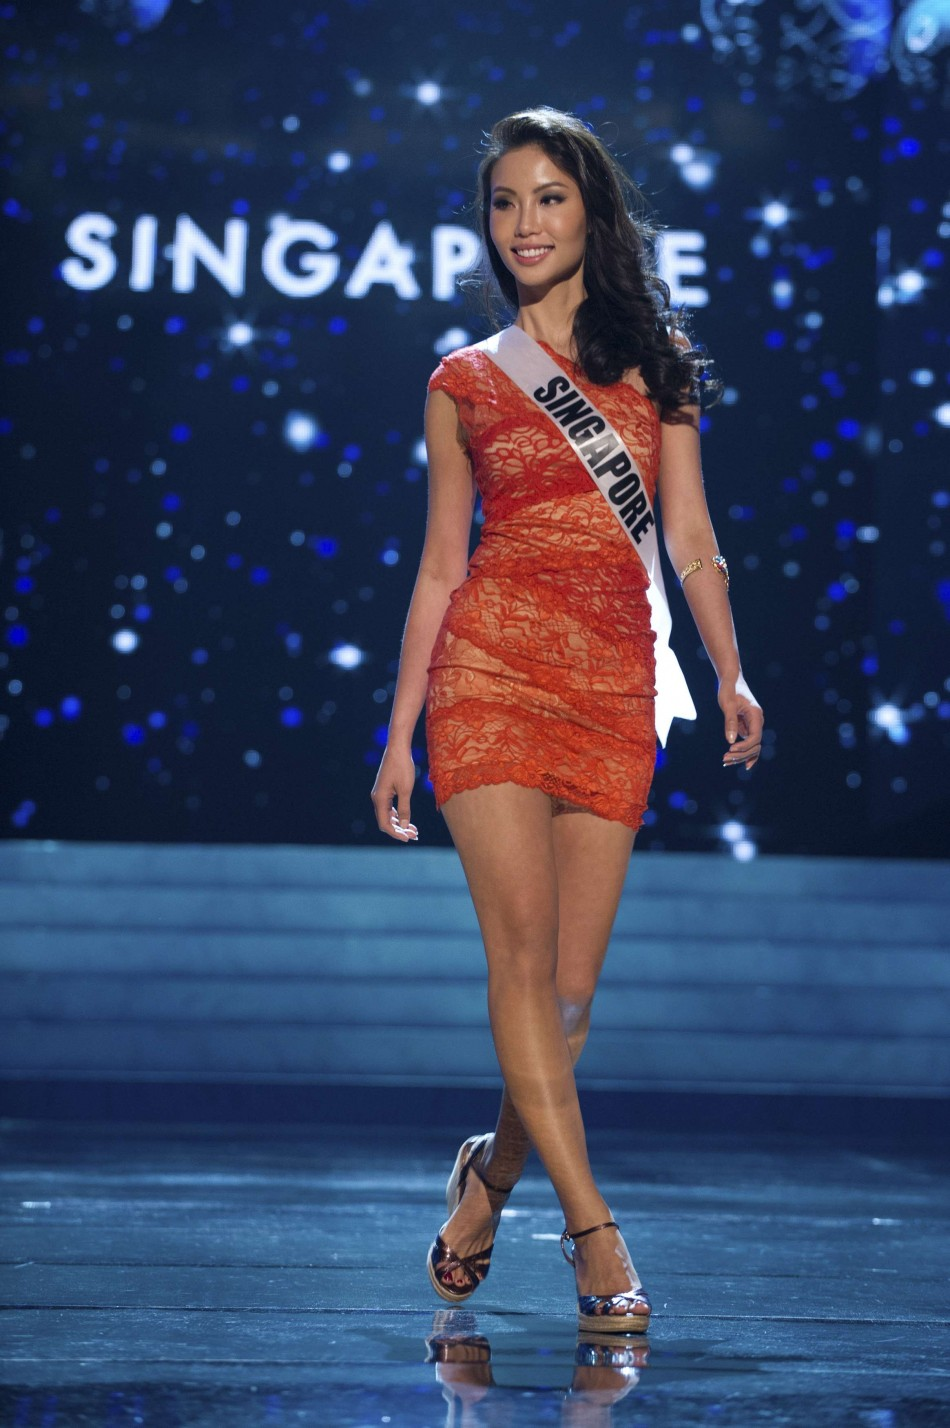 Miss Universe 2012 Grand Finale Live Coverage Information